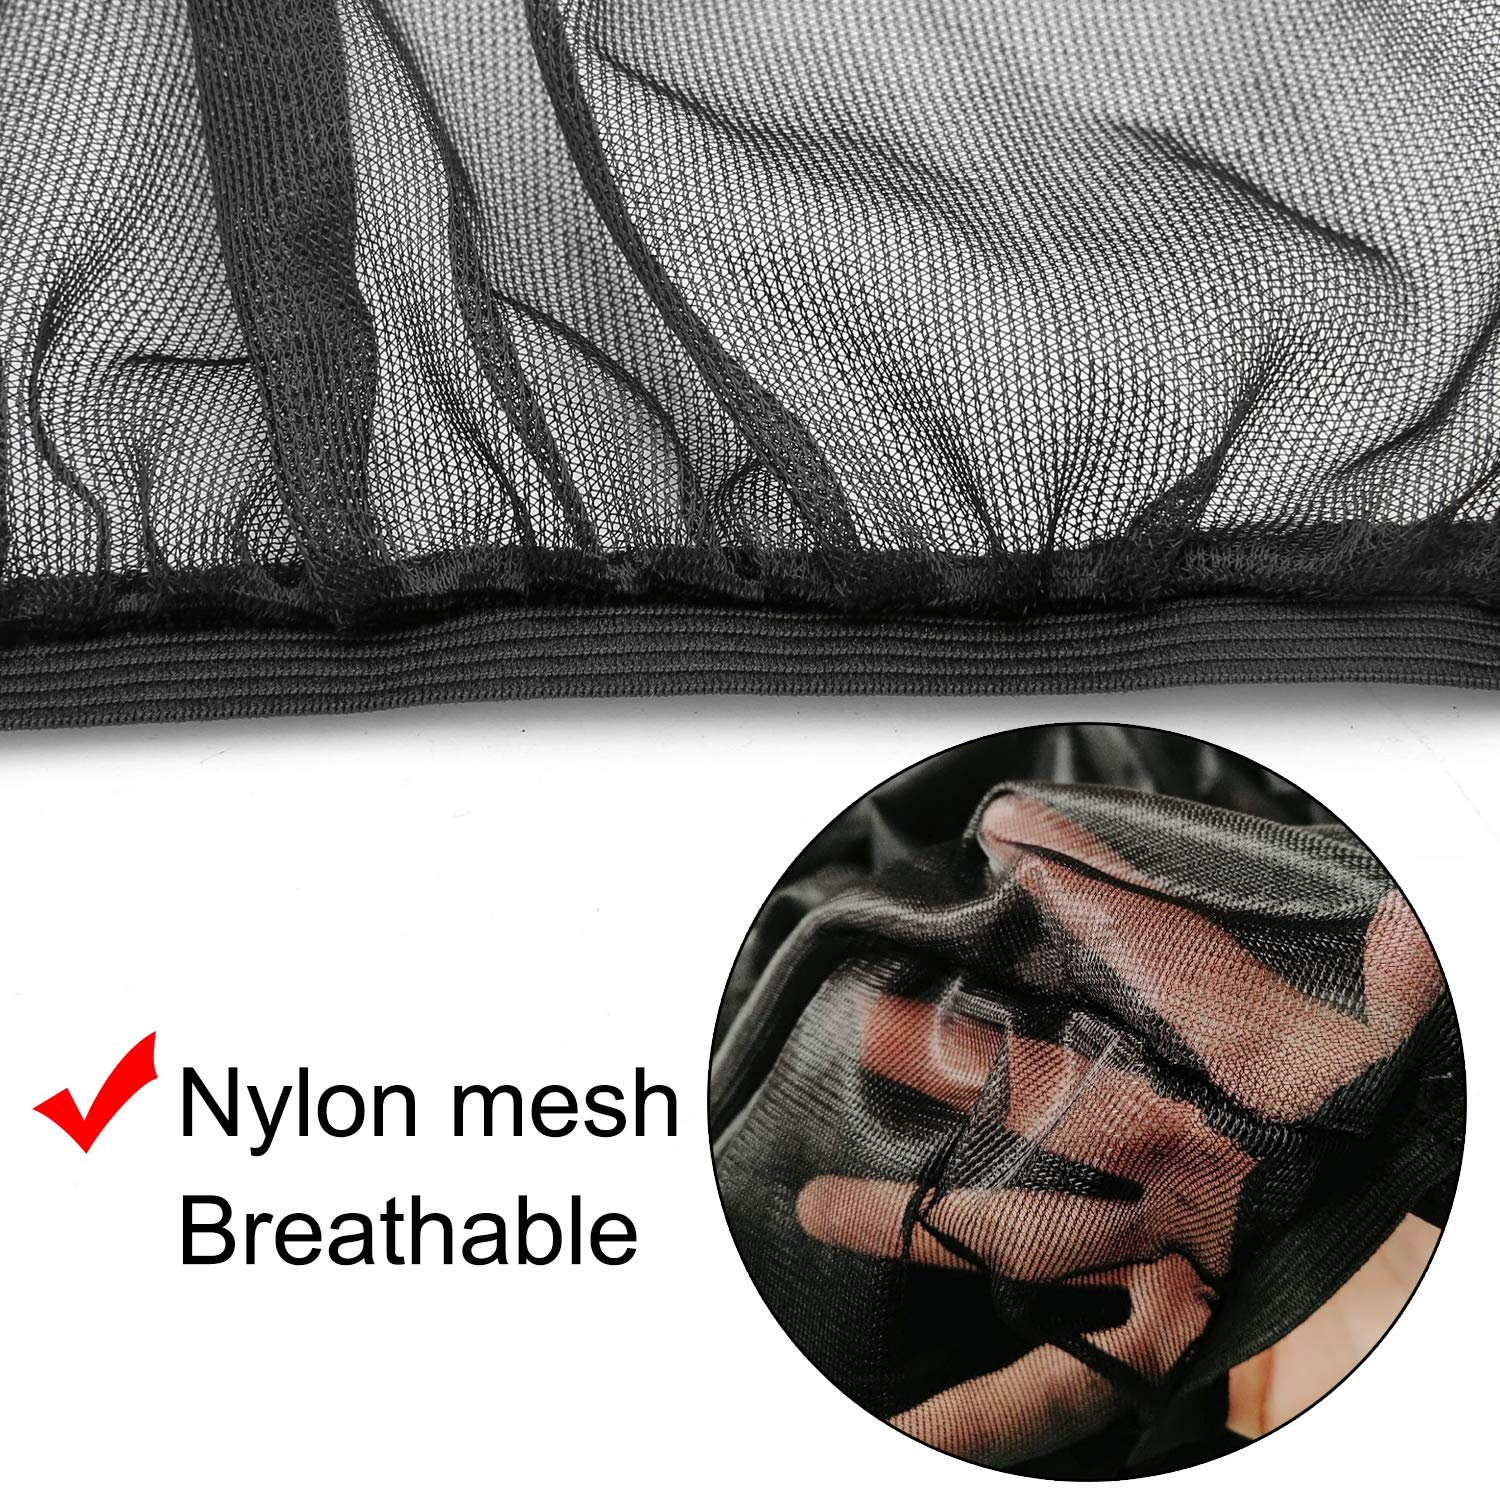 FICBOX 2Pack Car Side Window Shade Universal Sunshades Breathable Mesh Shield Protect Baby Pet from Sun\'s Glare & Harmful UV Rays Stretchable Fit for All Vehicle